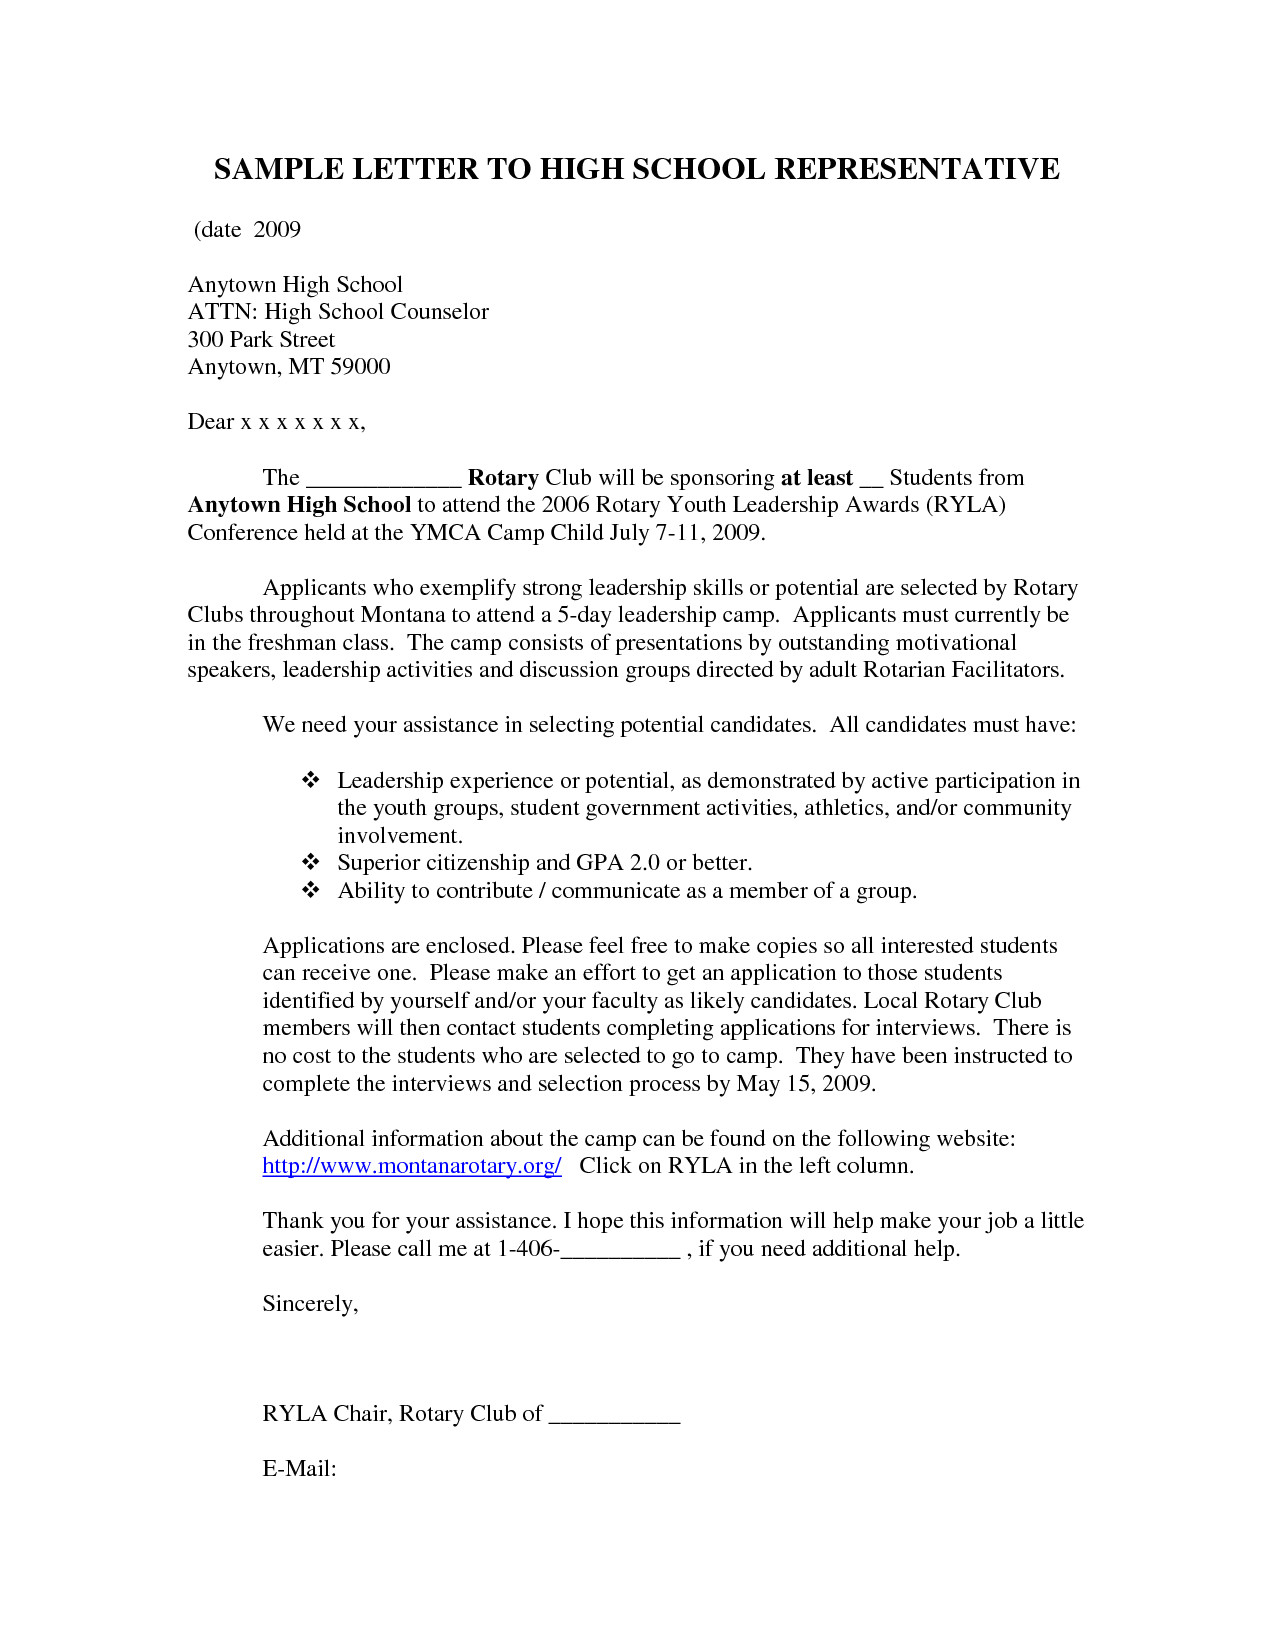 Examples Of Cover Letters for High School Students Sample Cover Letter for High School Student with No Work